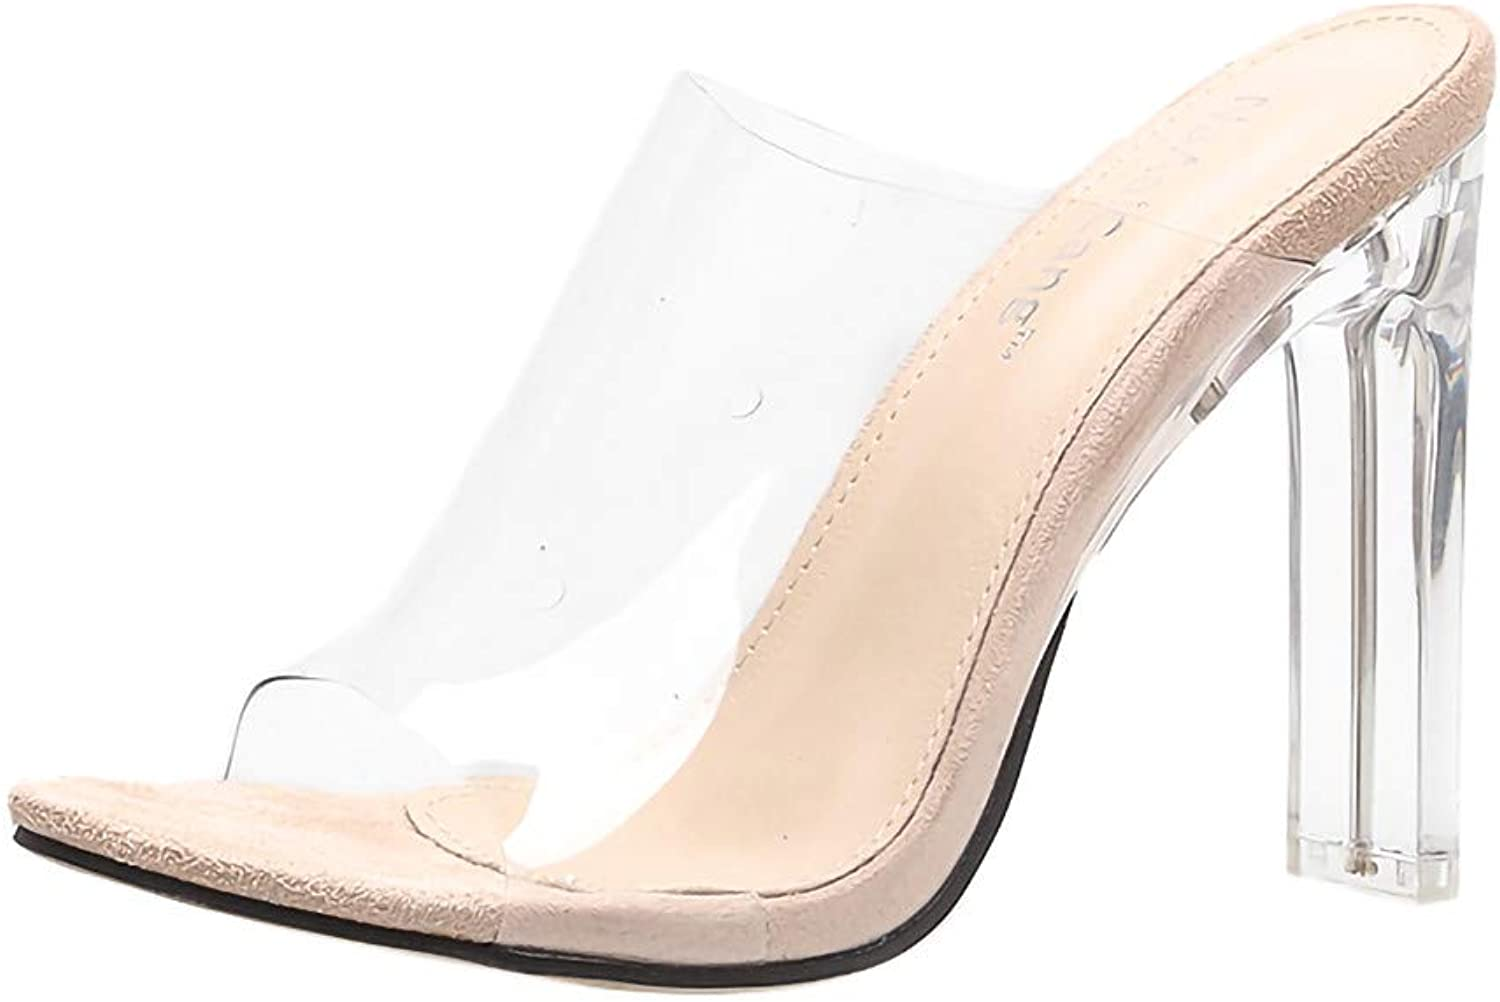 HKDGID Women's Nude Peep Toe Transparent Strap Clear Sandals High Heeled shoes Slippers